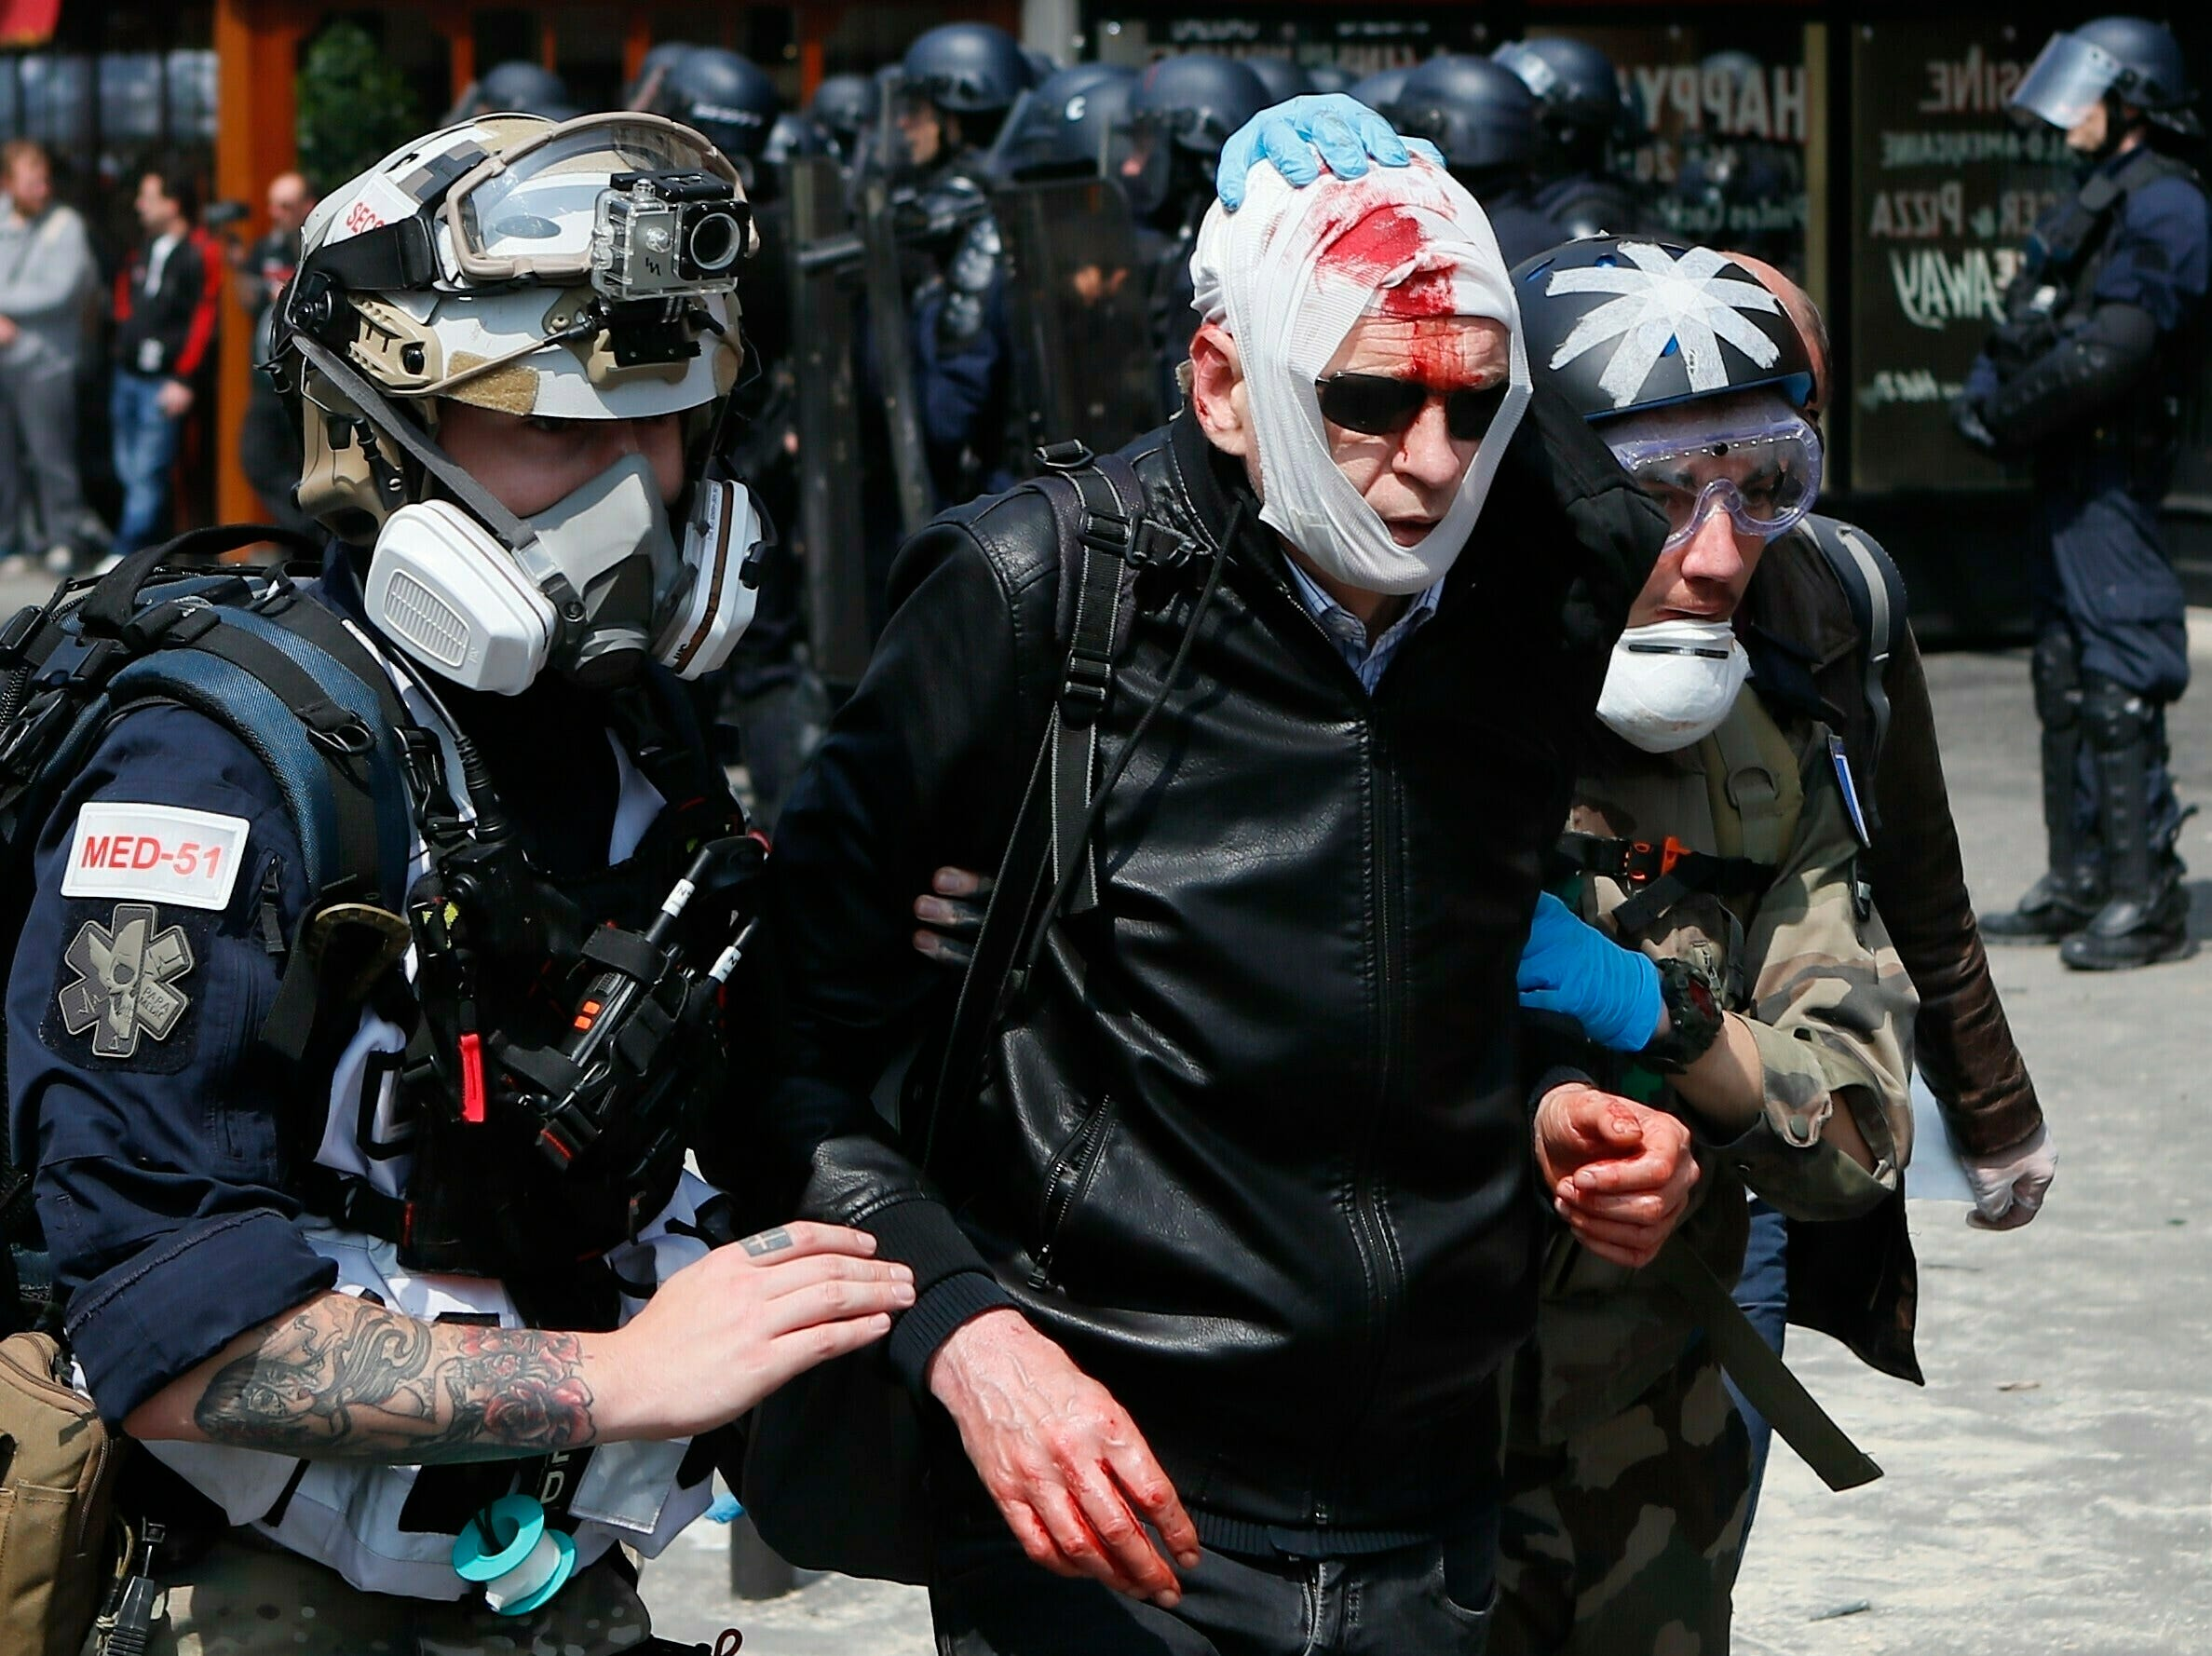 """A man, his face covered in blood, is helped to leave during a May Day demonstration in Paris, Wednesday, May 1, 2019. French authorities announced tight security measures for May Day demonstrations, with the interior minister saying there was a risk that """"radical activists"""" could join anti-government yellow vest protesters and union workers in the streets of Paris and across the country."""